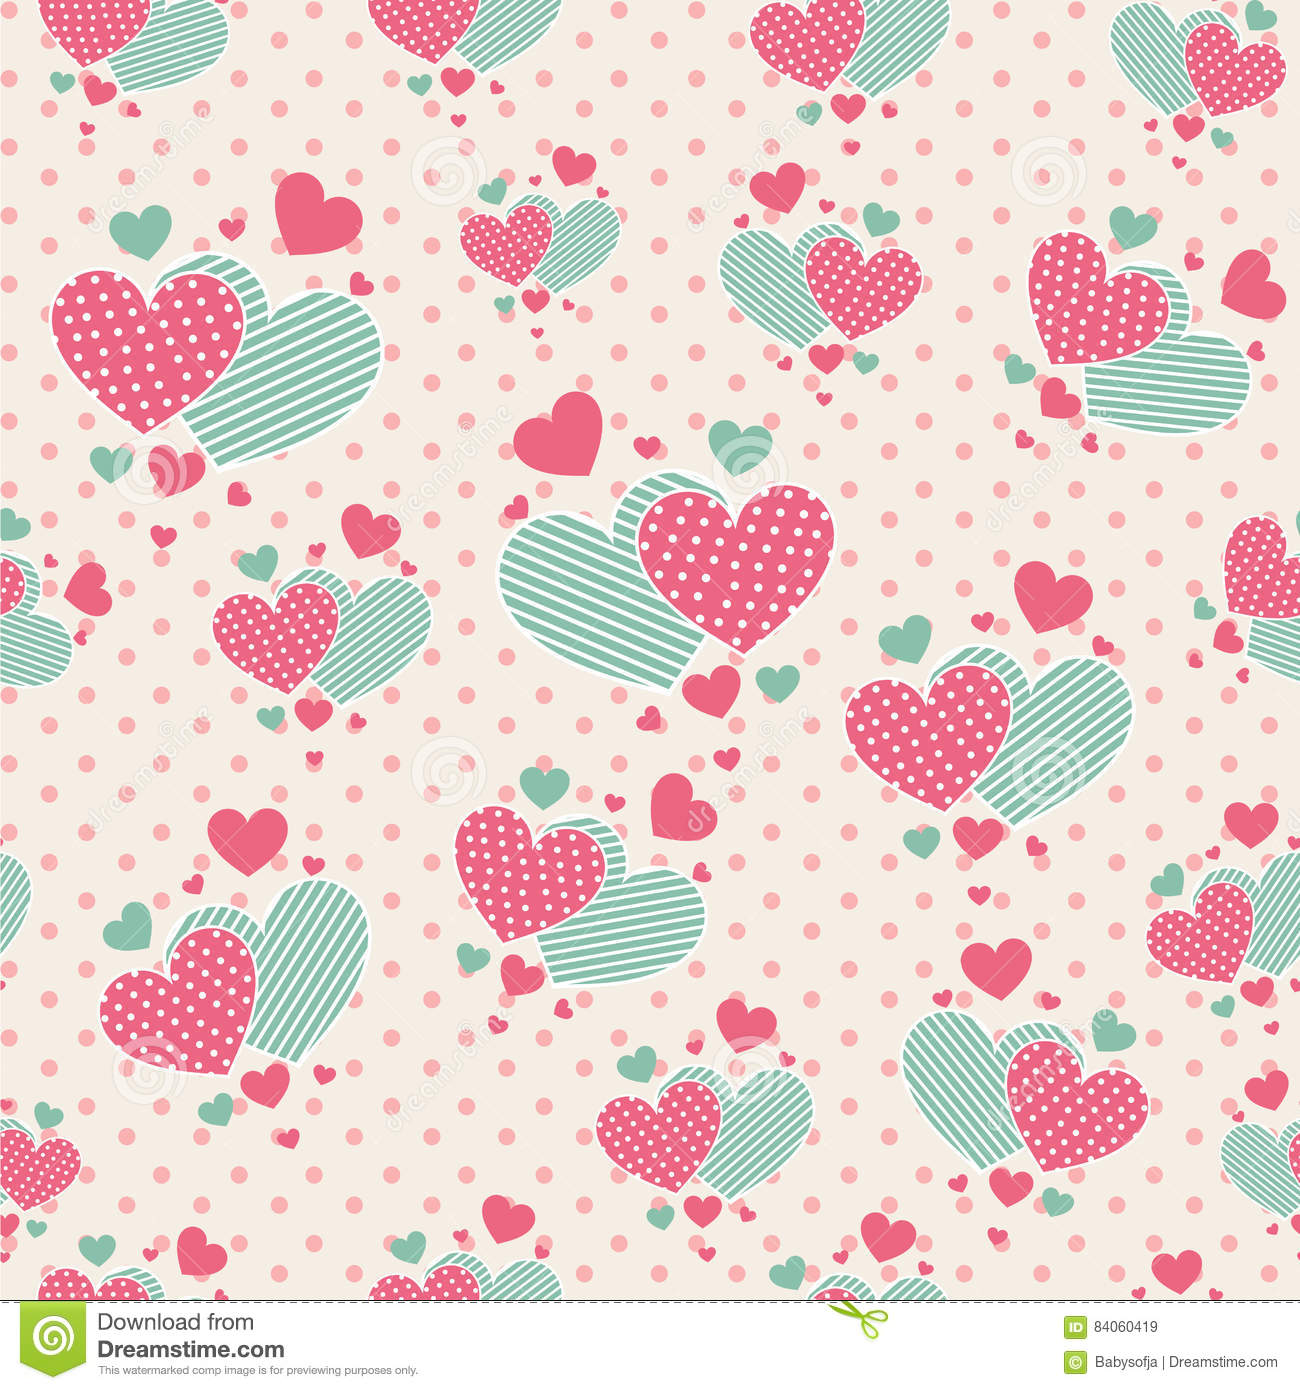 Cute cartoon hearts for scrapbook paper stock vector for Cute designs for paper